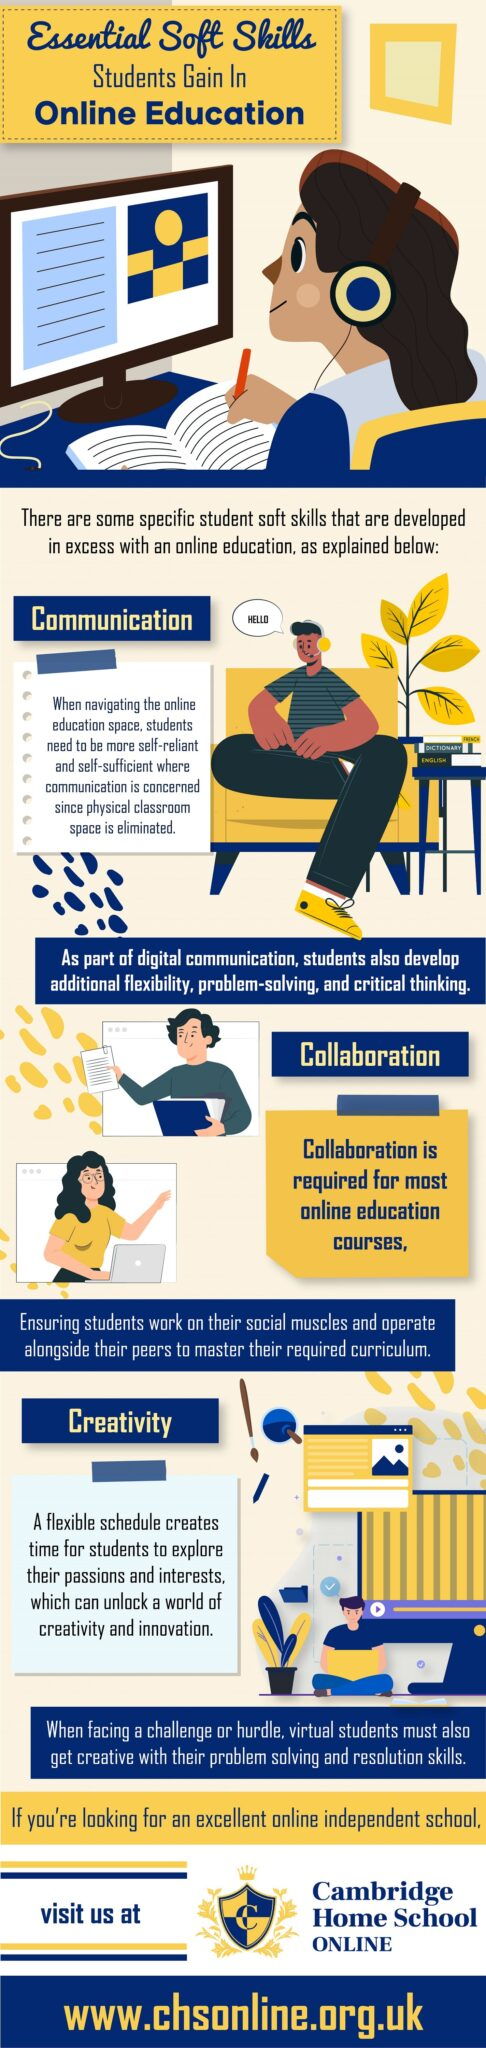 essential soft skills student gain in online education